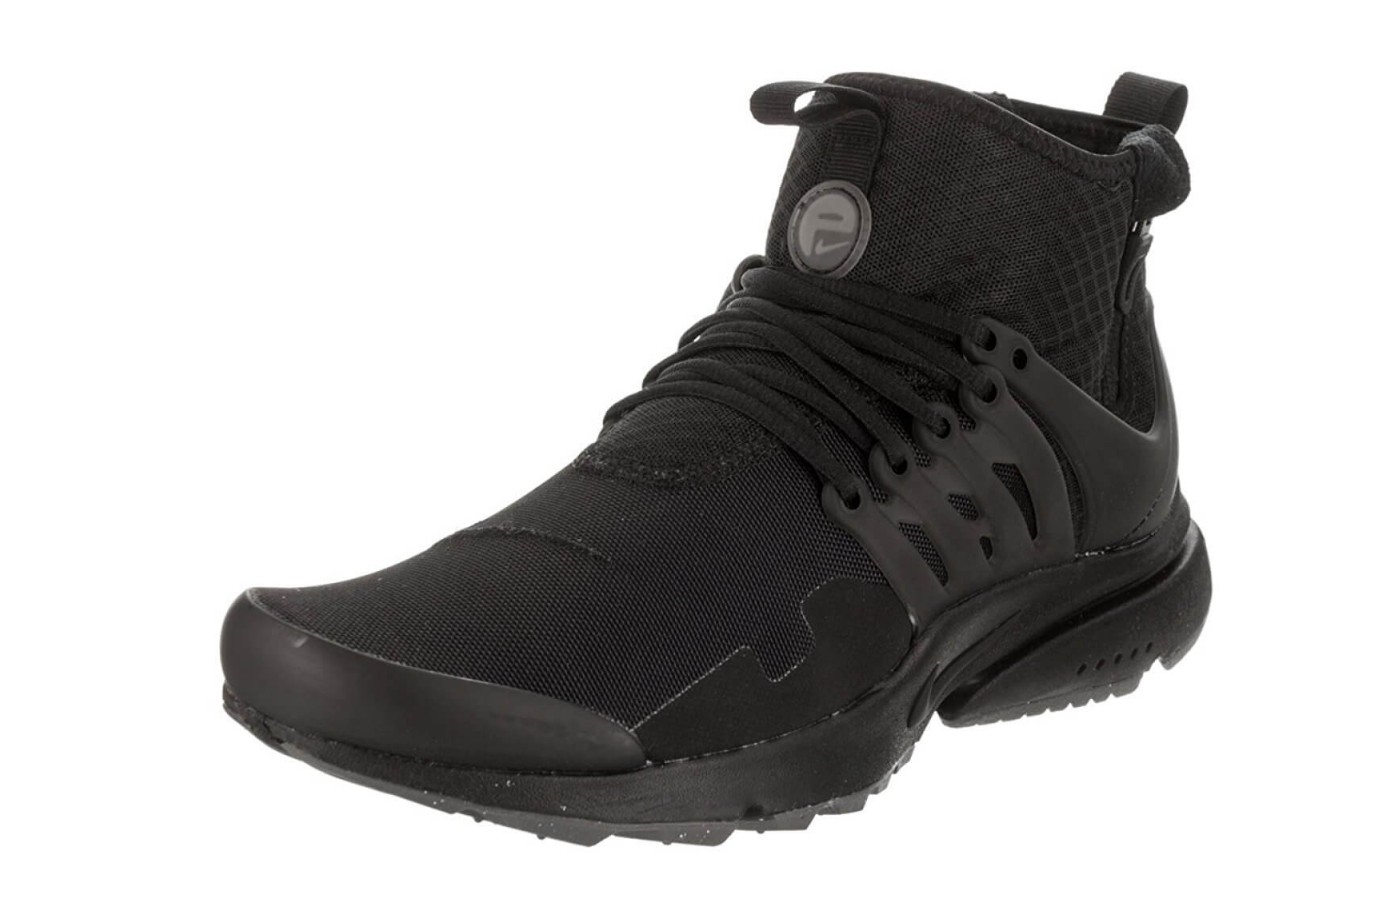 innovative design 3faa0 63480 An angled view of the Nike Air Presto Mid Utility.